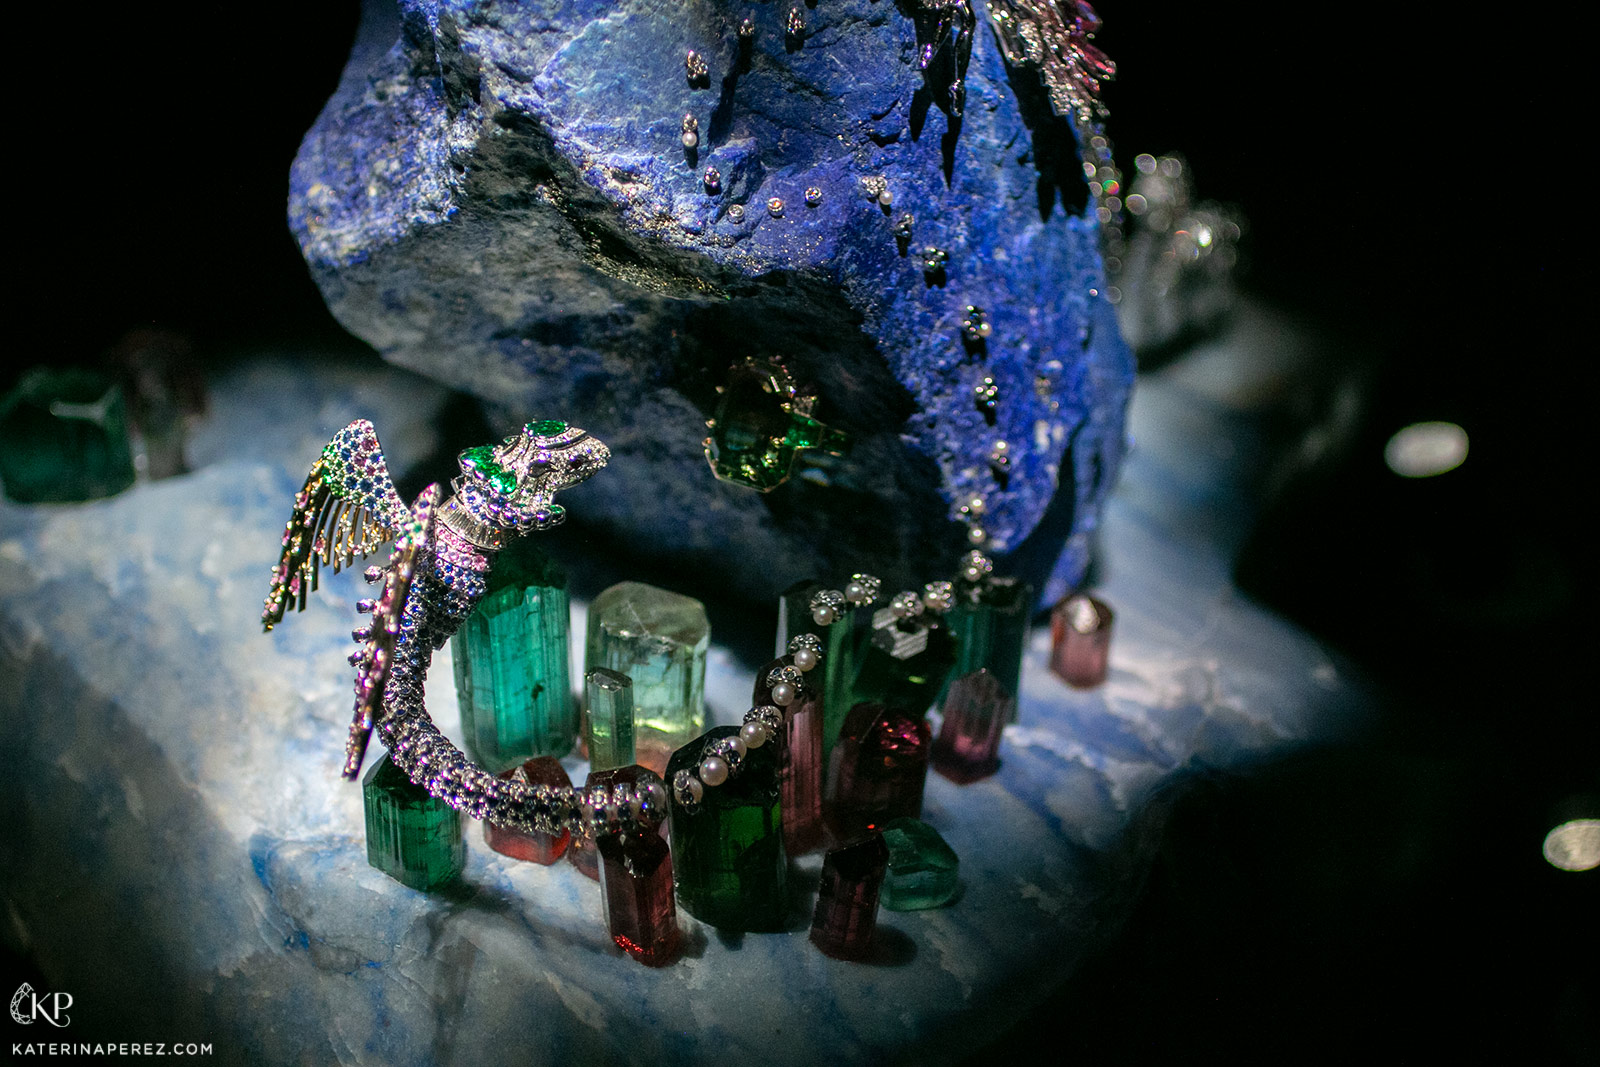 Perched on crystals of tourmaline, a gem-set chimera spreads its precious wings